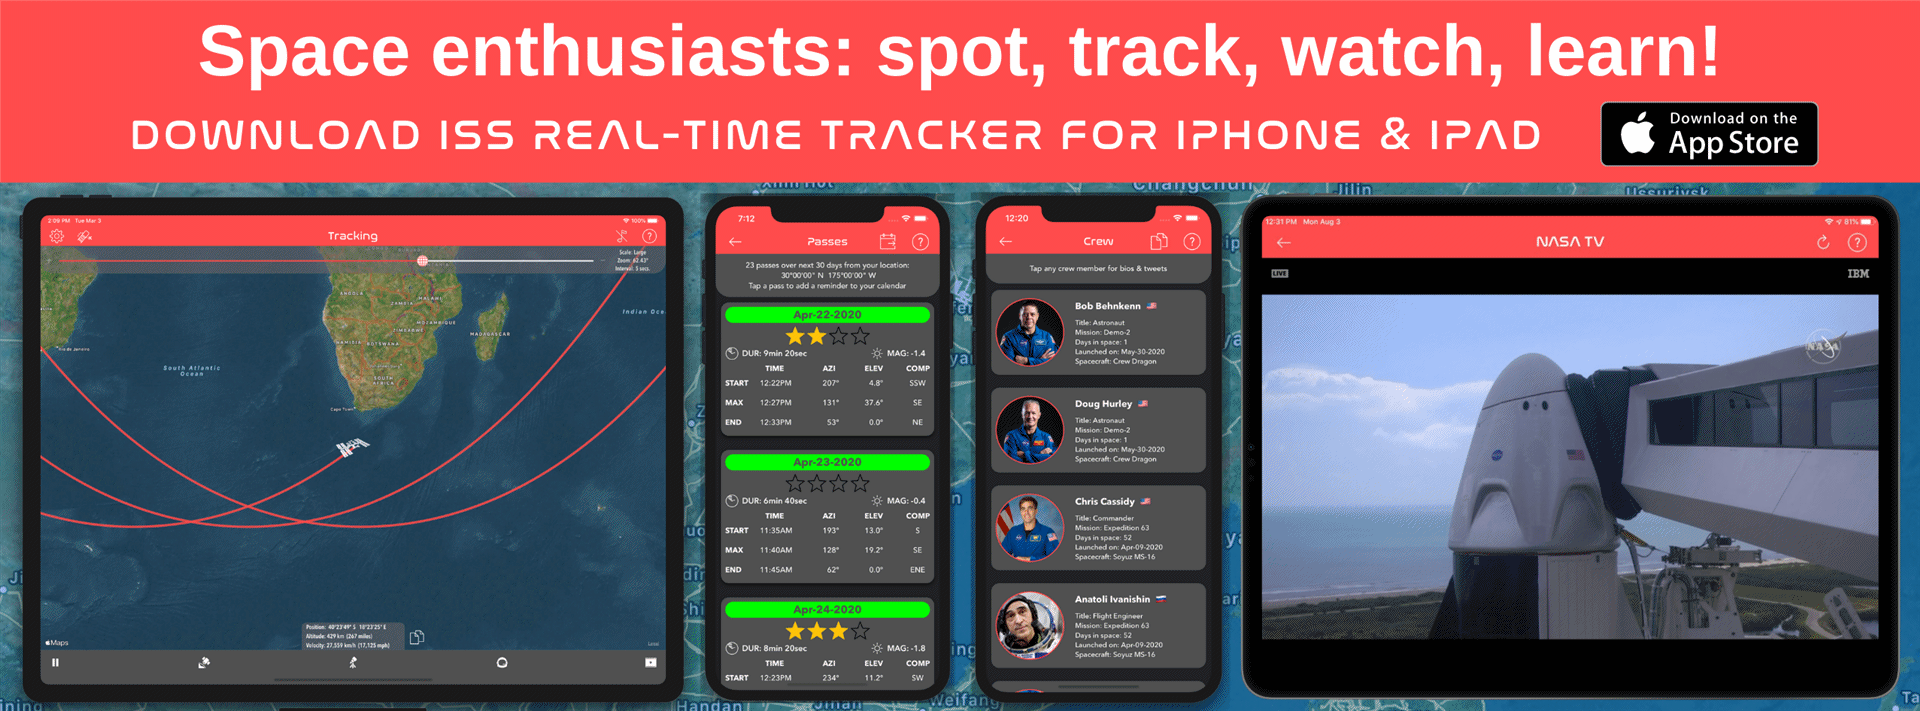 Track, find, locate, spot the International Space Station - ISS - get passes and more with ISS Real-Time Tracker for iPhone, iPad, and iPod touch